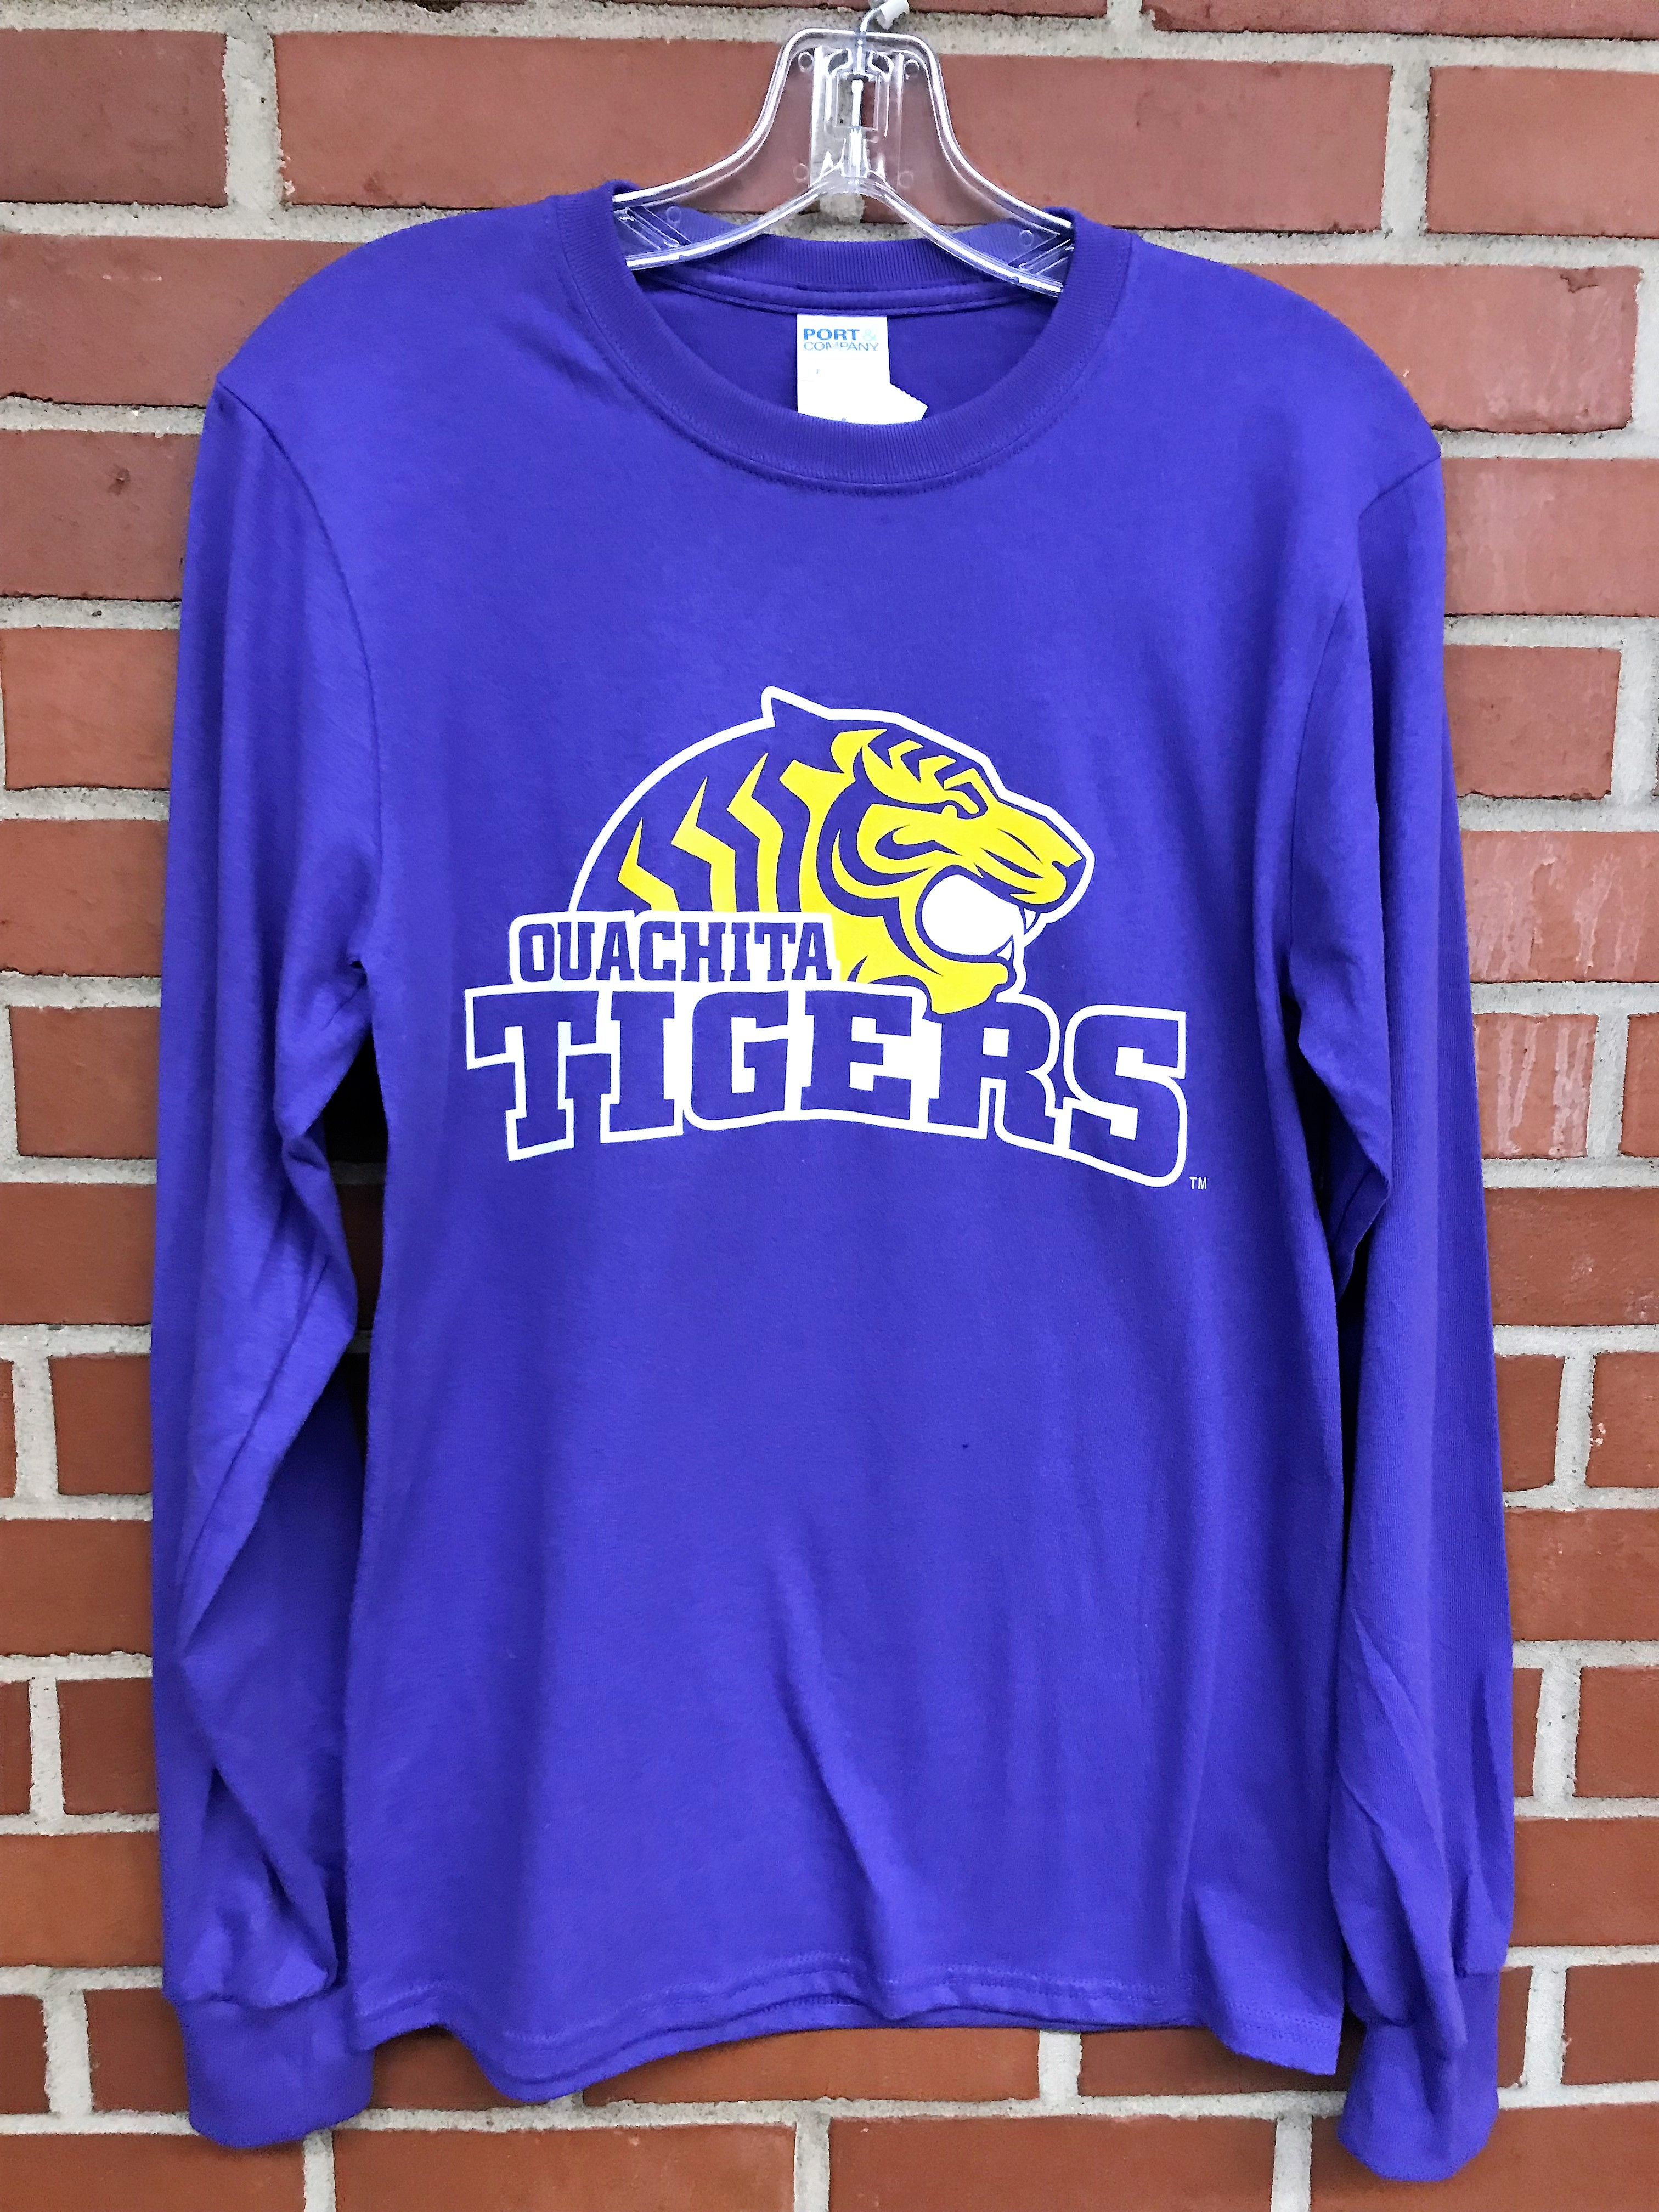 PURPLE OUACHITA BAPTIST UNIVERSITY LONG SLEEVE